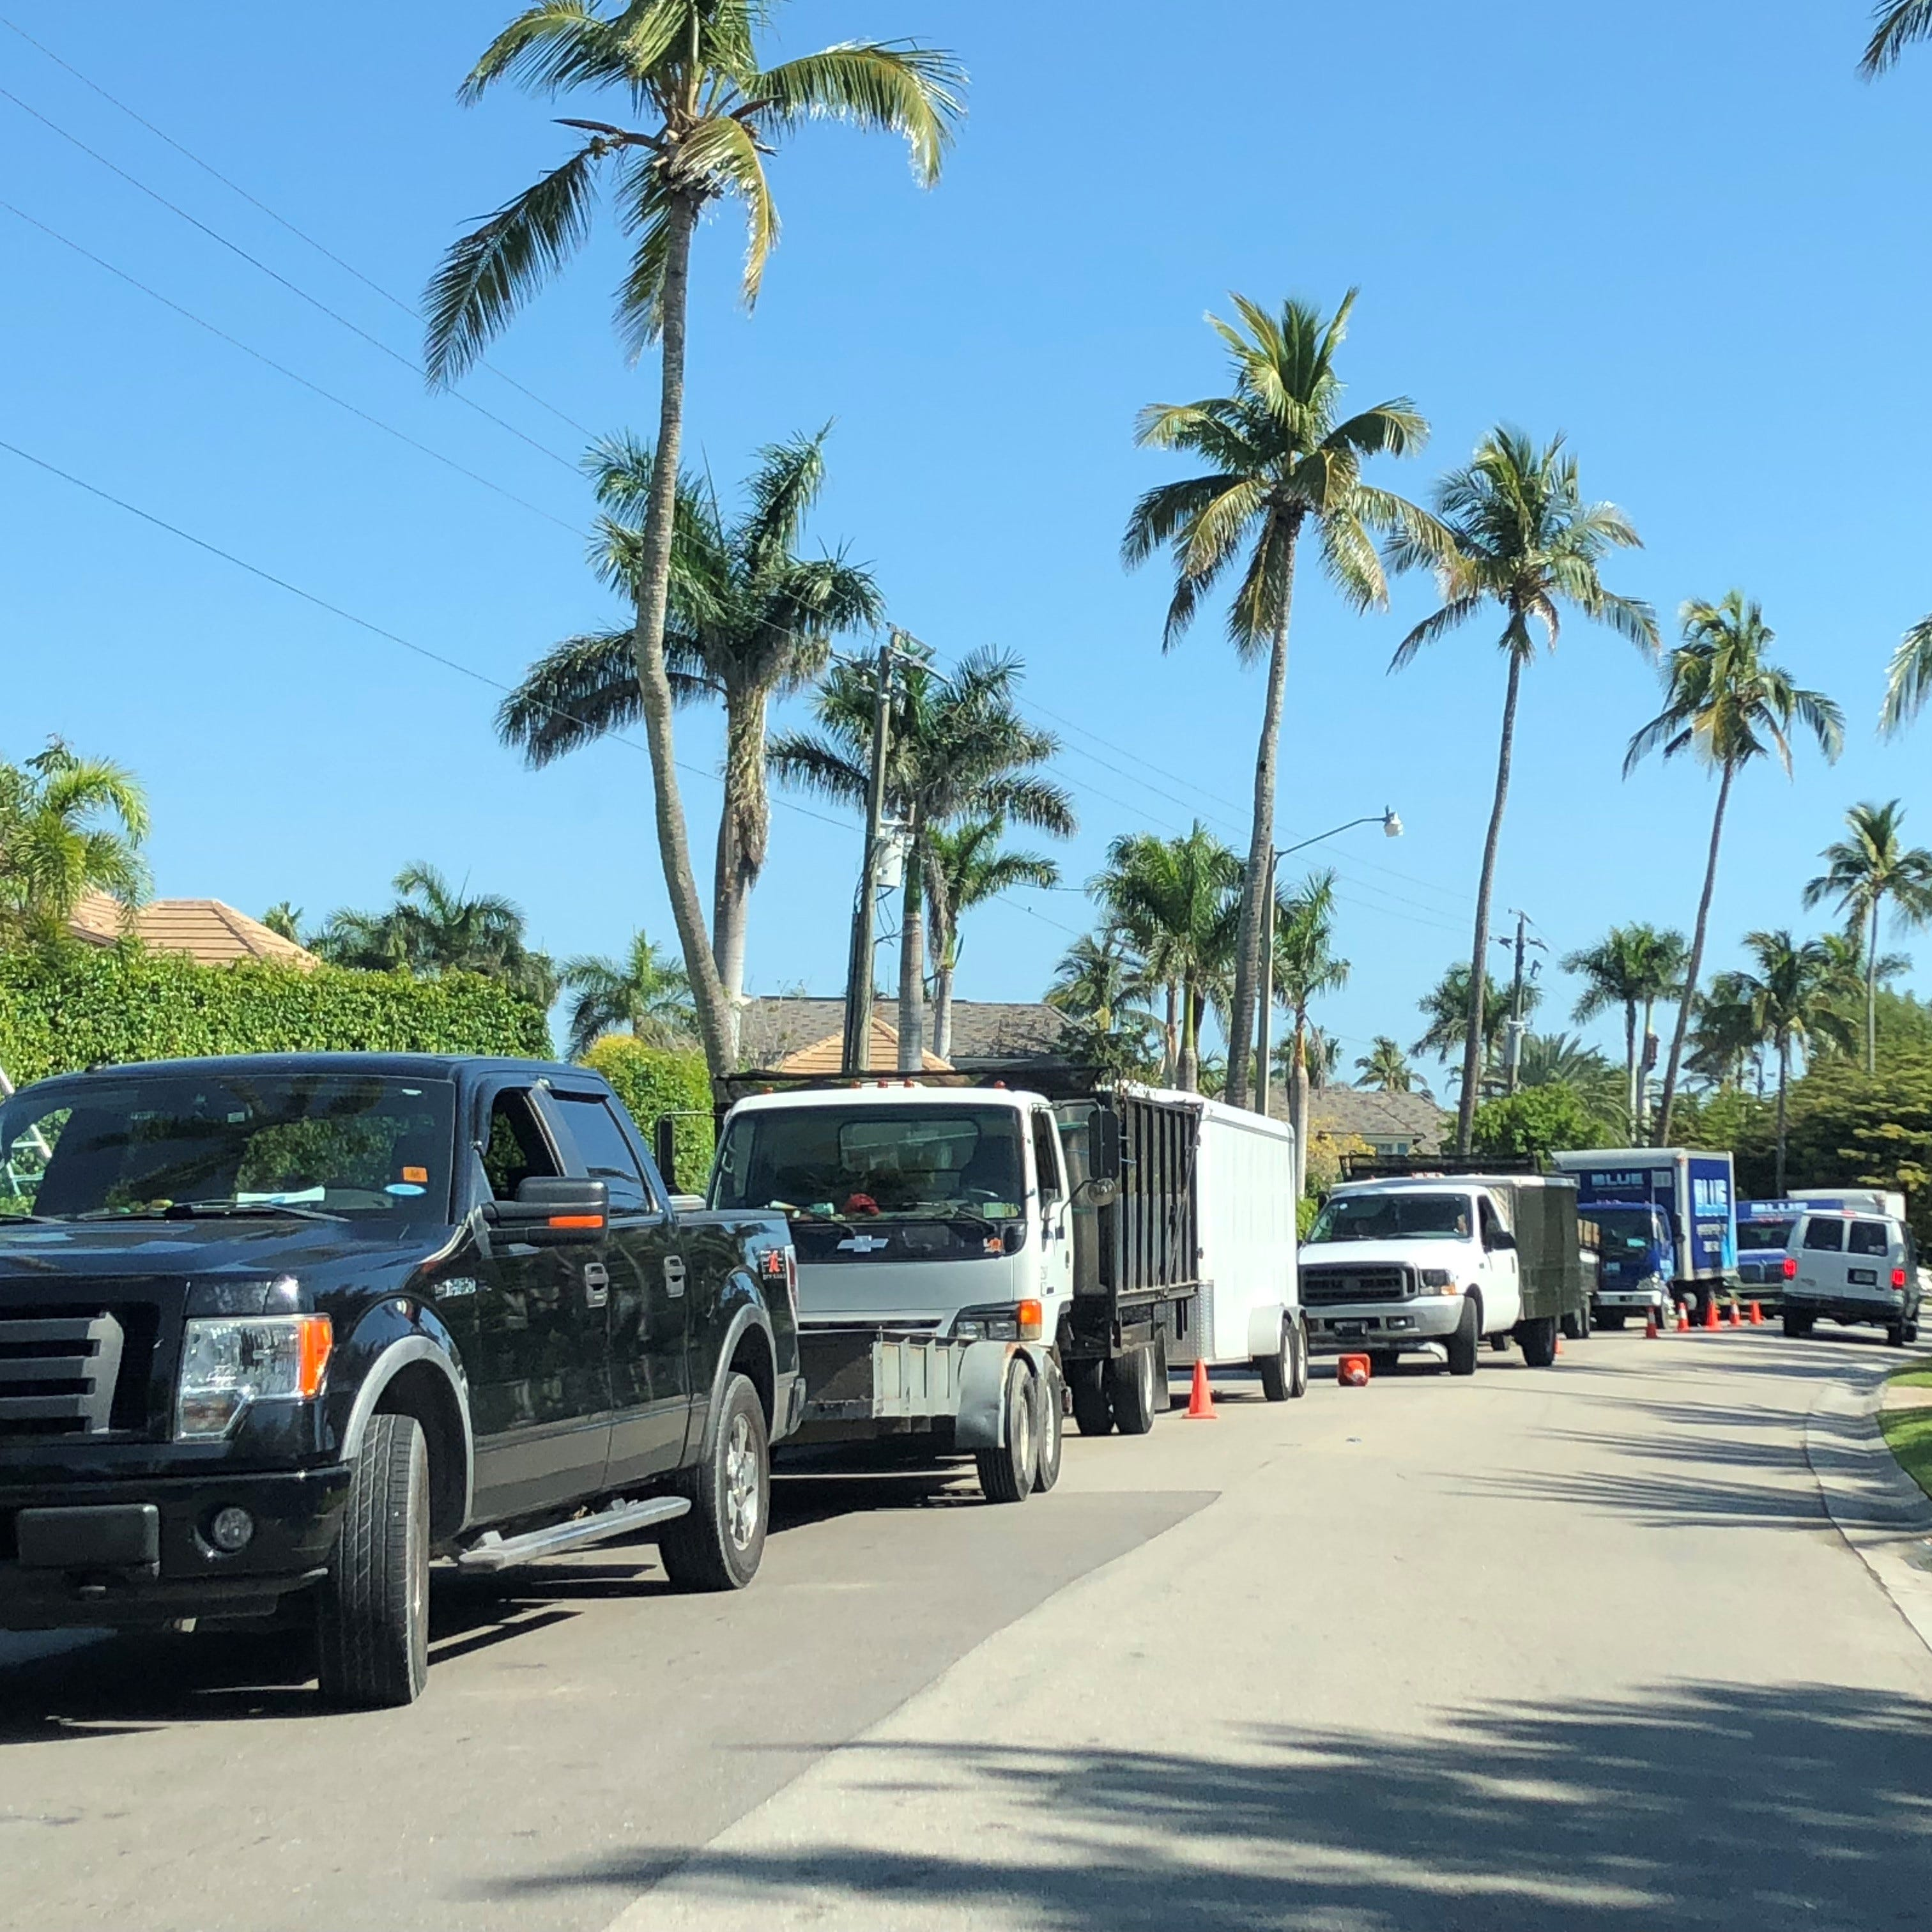 Naples bans commercial vehicles from parking on Port Royal streets